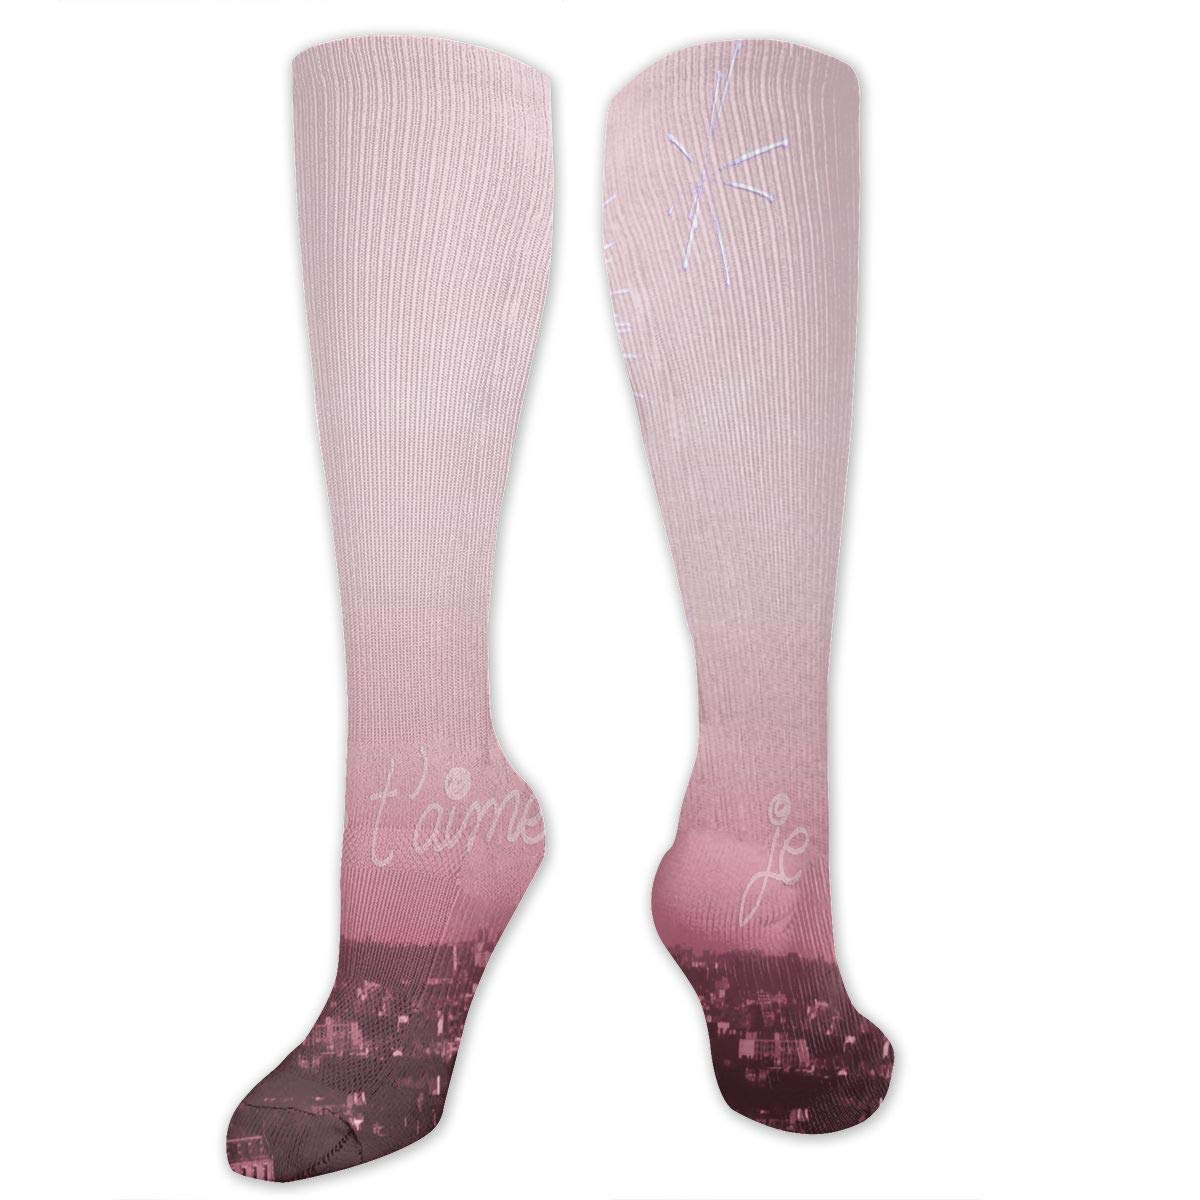 620cec6496a3 Amazon.com  Stretch Socks Pink Paris Soccer Socks With Soccer Balls Over  The Calf For Running